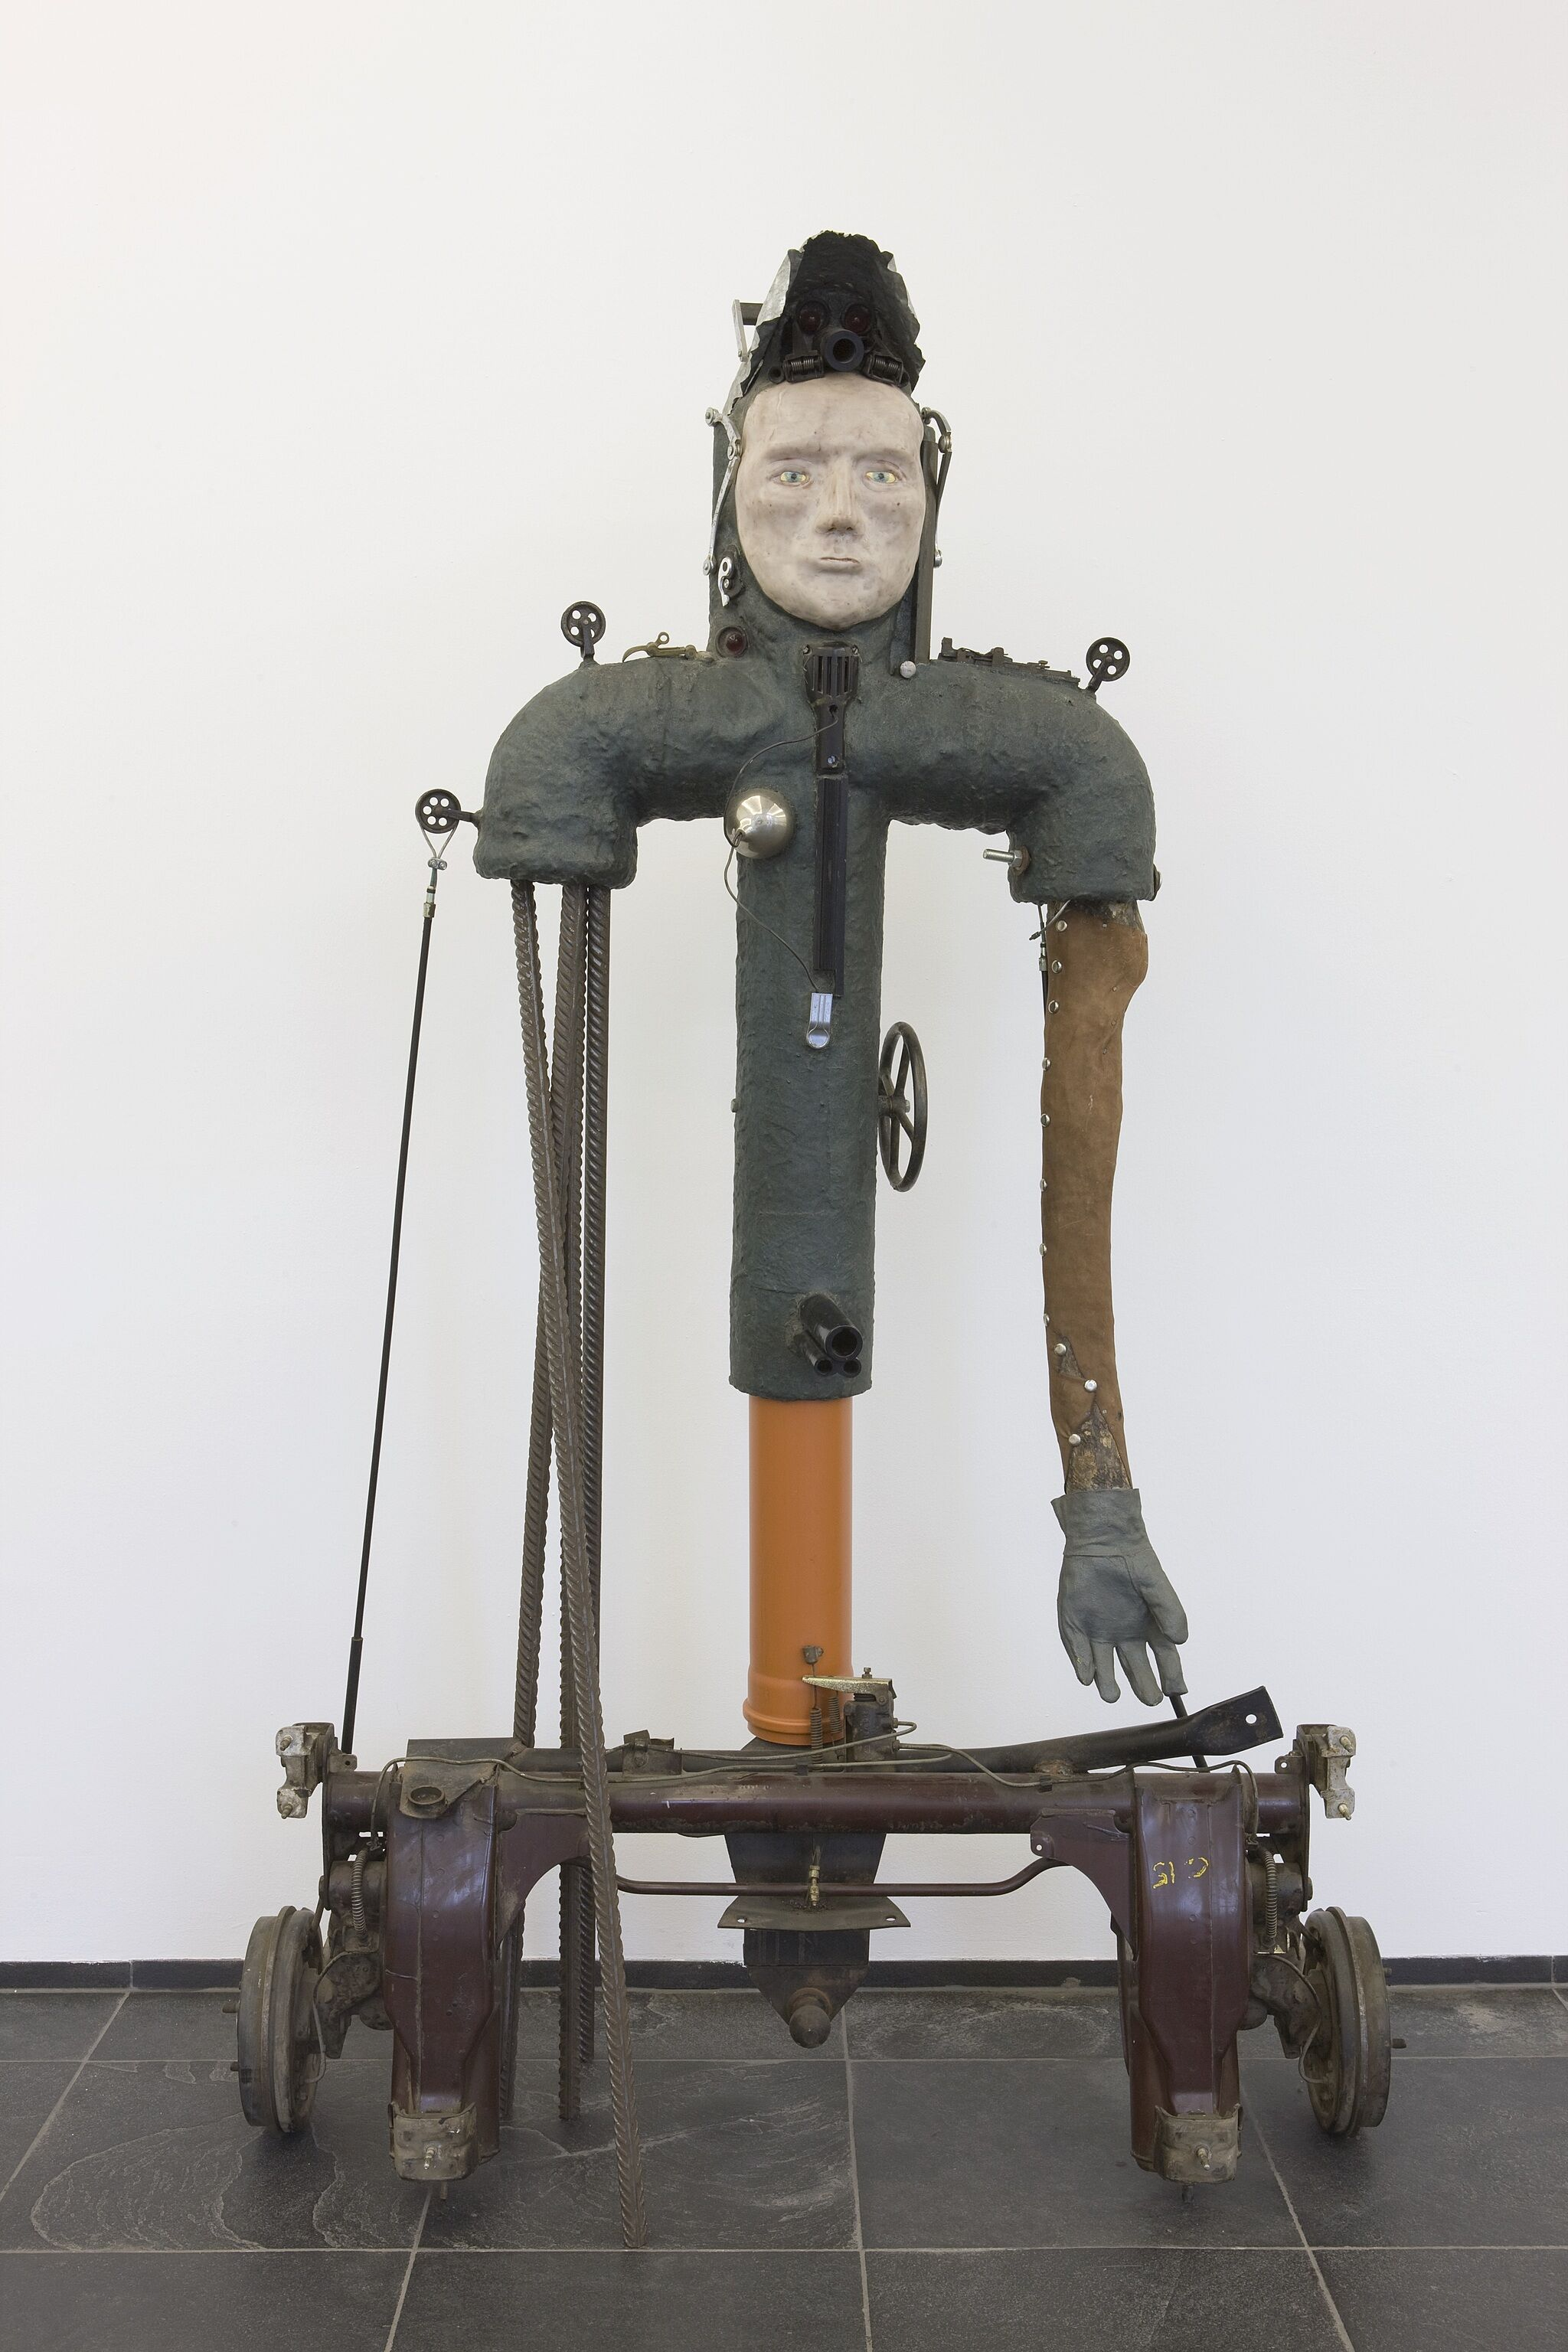 Abstract sculpture of a man with wheels